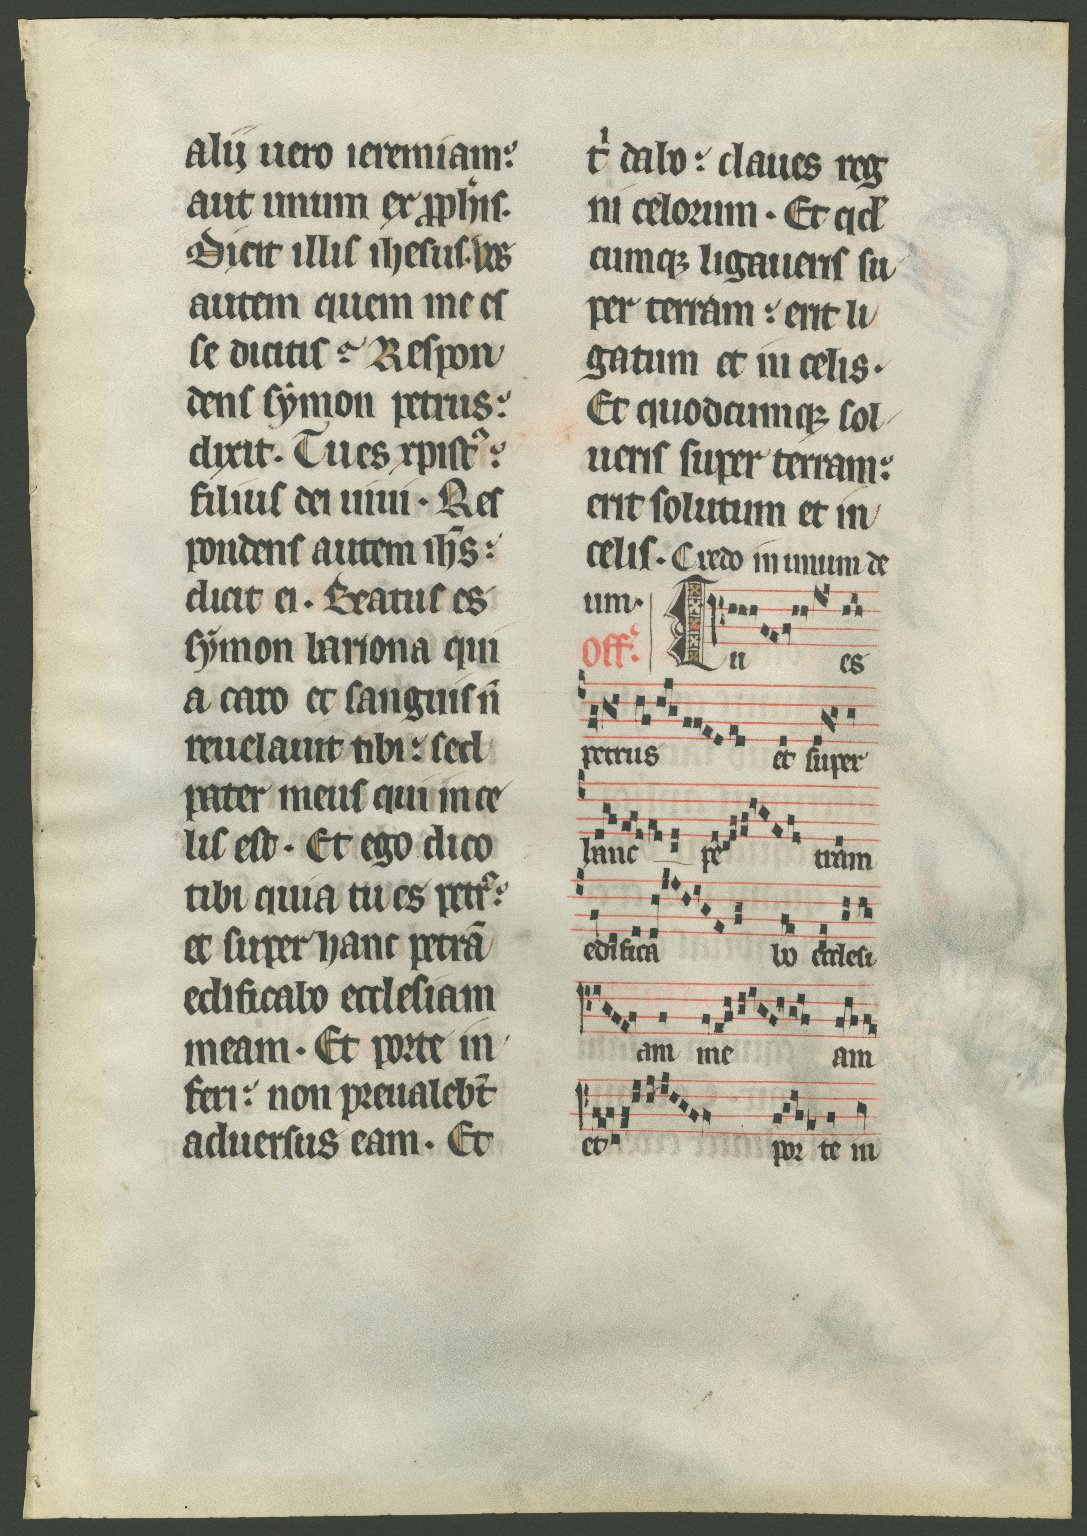 MS 108, recto